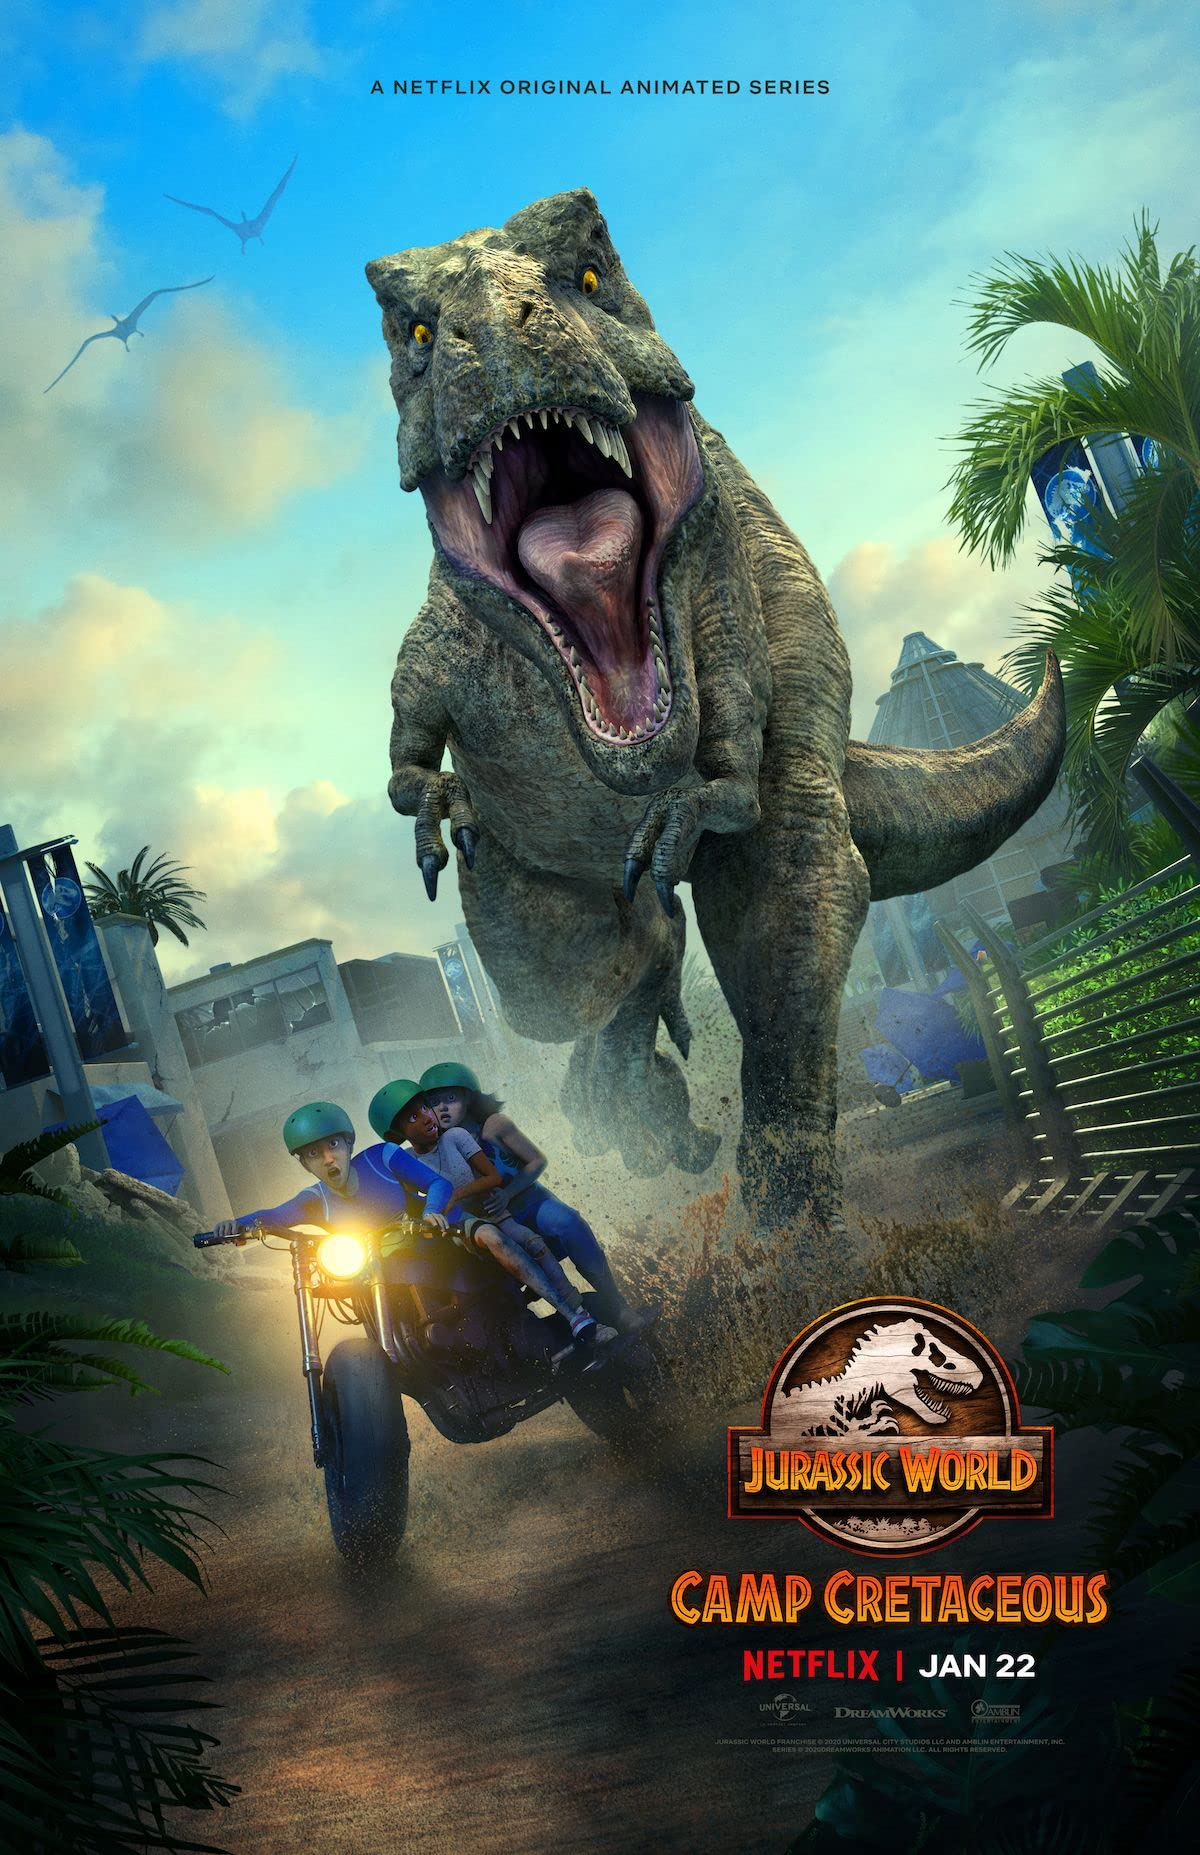 Jurassic World Camp Cretaceous S02 2021 Hindi Dubbed Netflix Complete Web Series 550MB HDRip Download